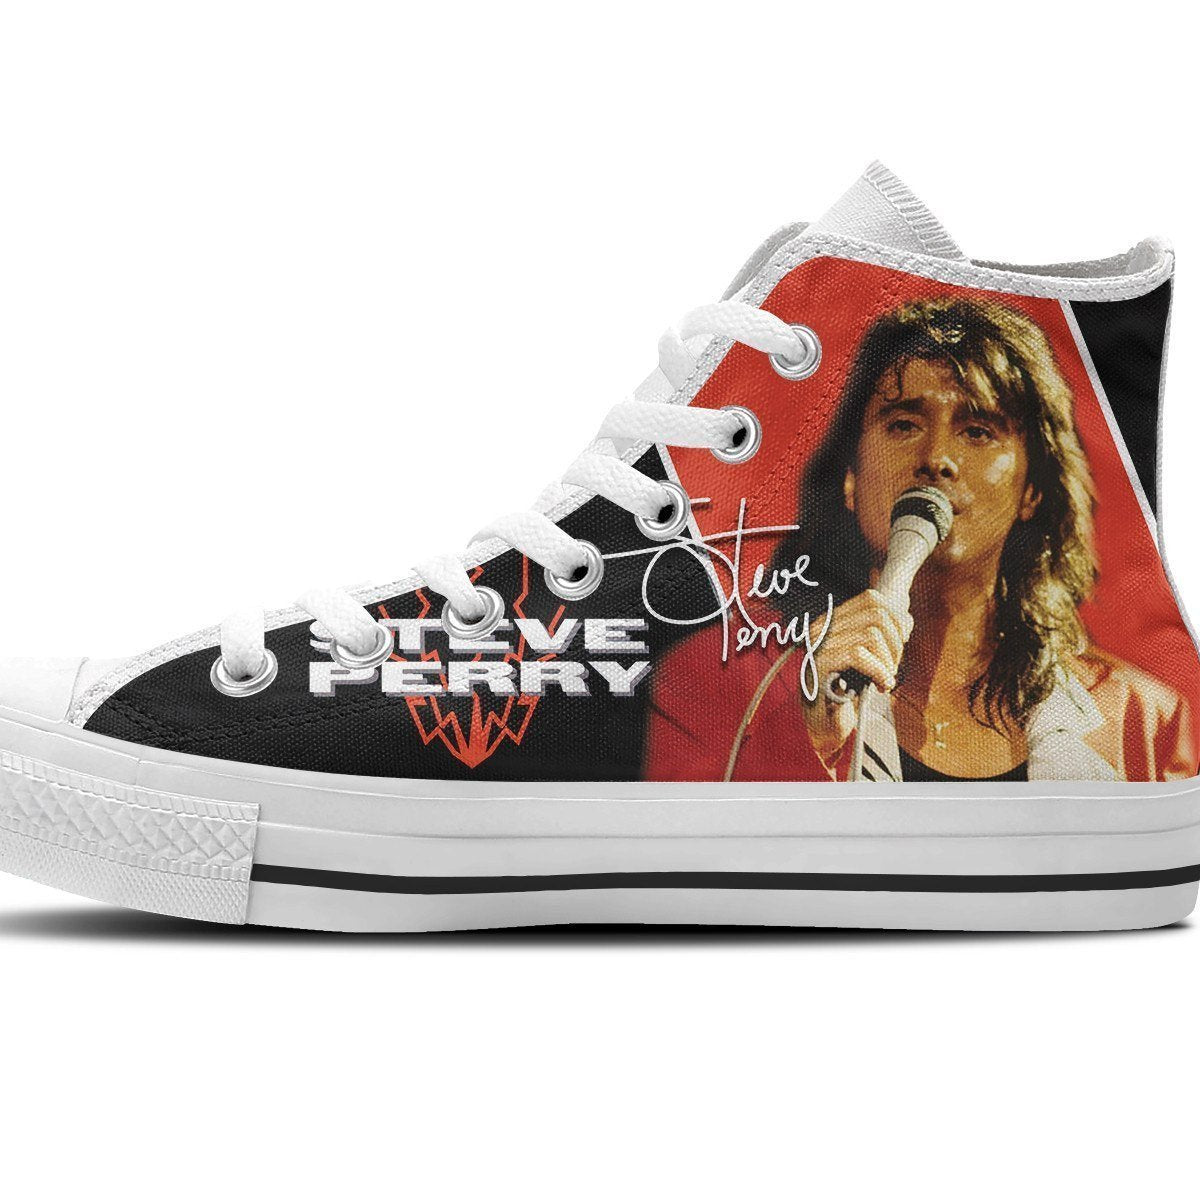 steve perry mens high top sneakers